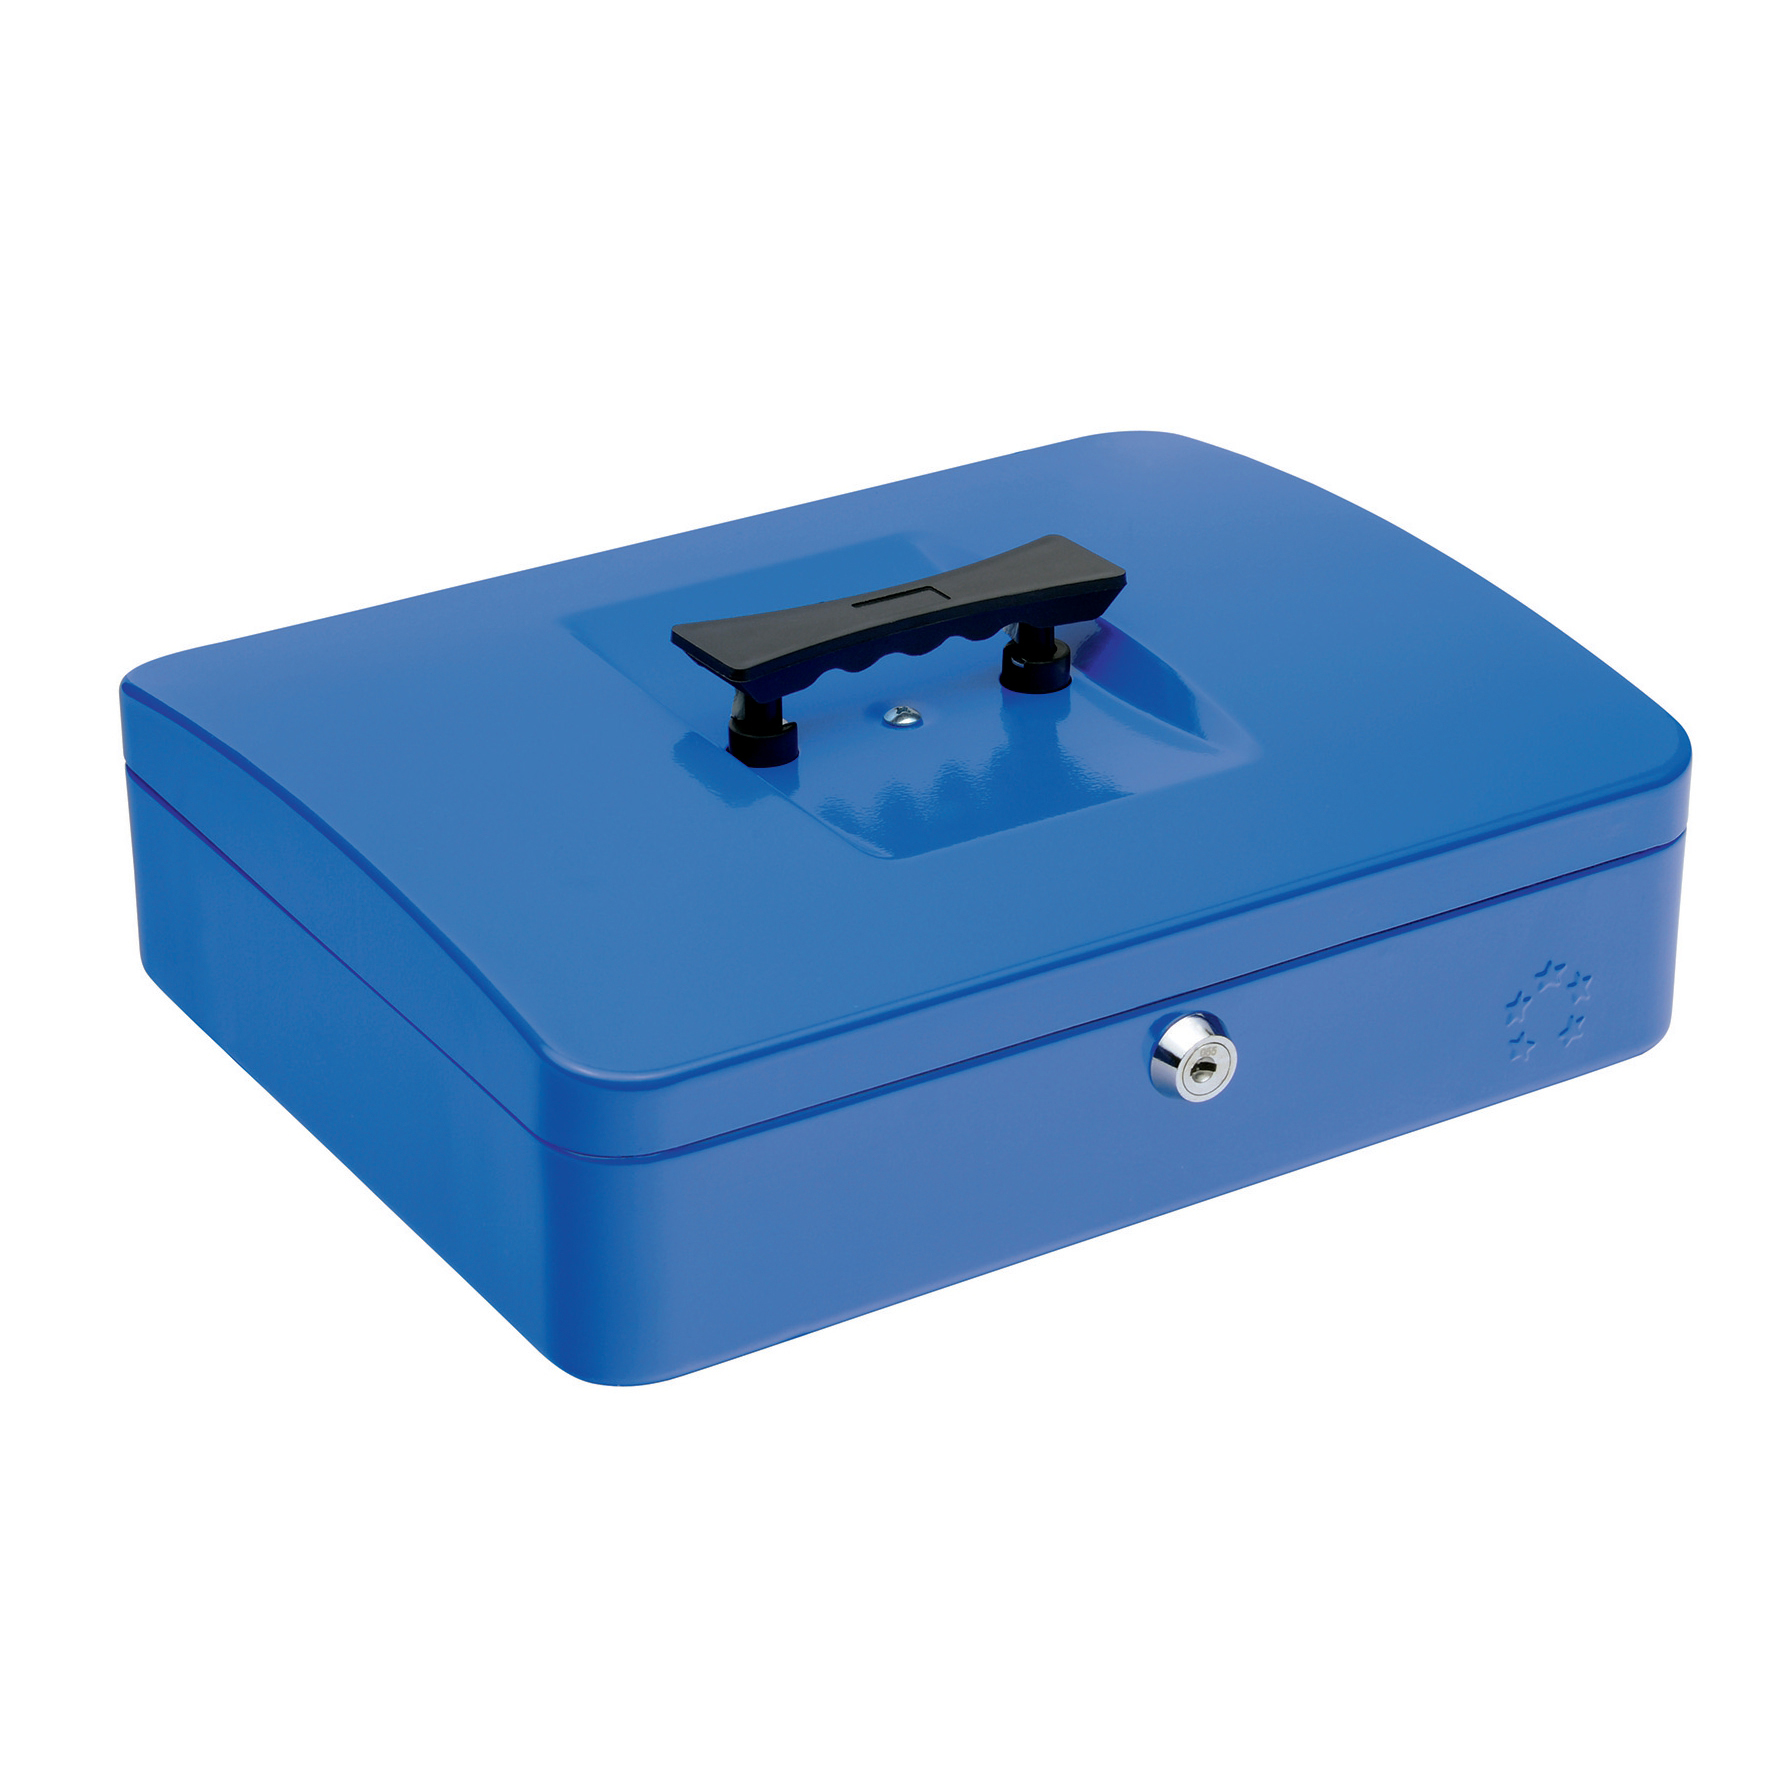 Cash 5 Star Facilities Cash Box with 5-compartment Tray Steel Spring Lock 12 Inch W300xD240xH70mm Blue